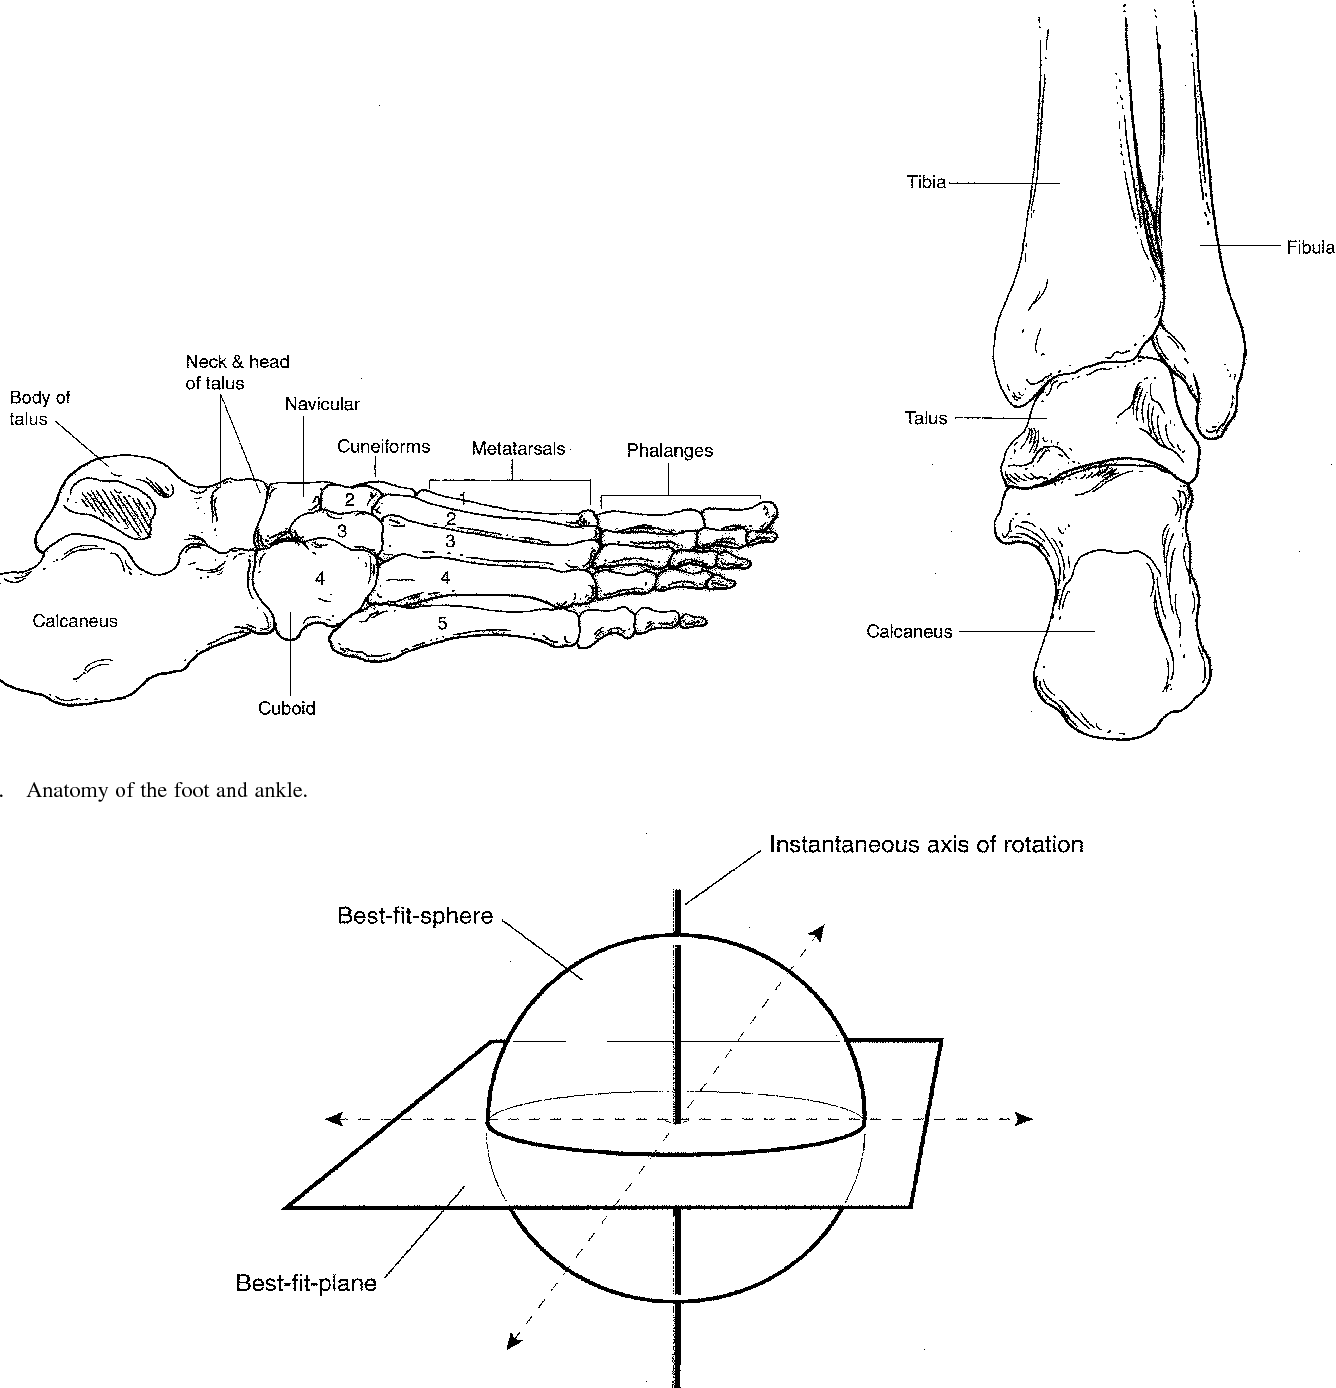 Figure 1 from The instantaneous axis of rotation (IAOR) of the foot ...